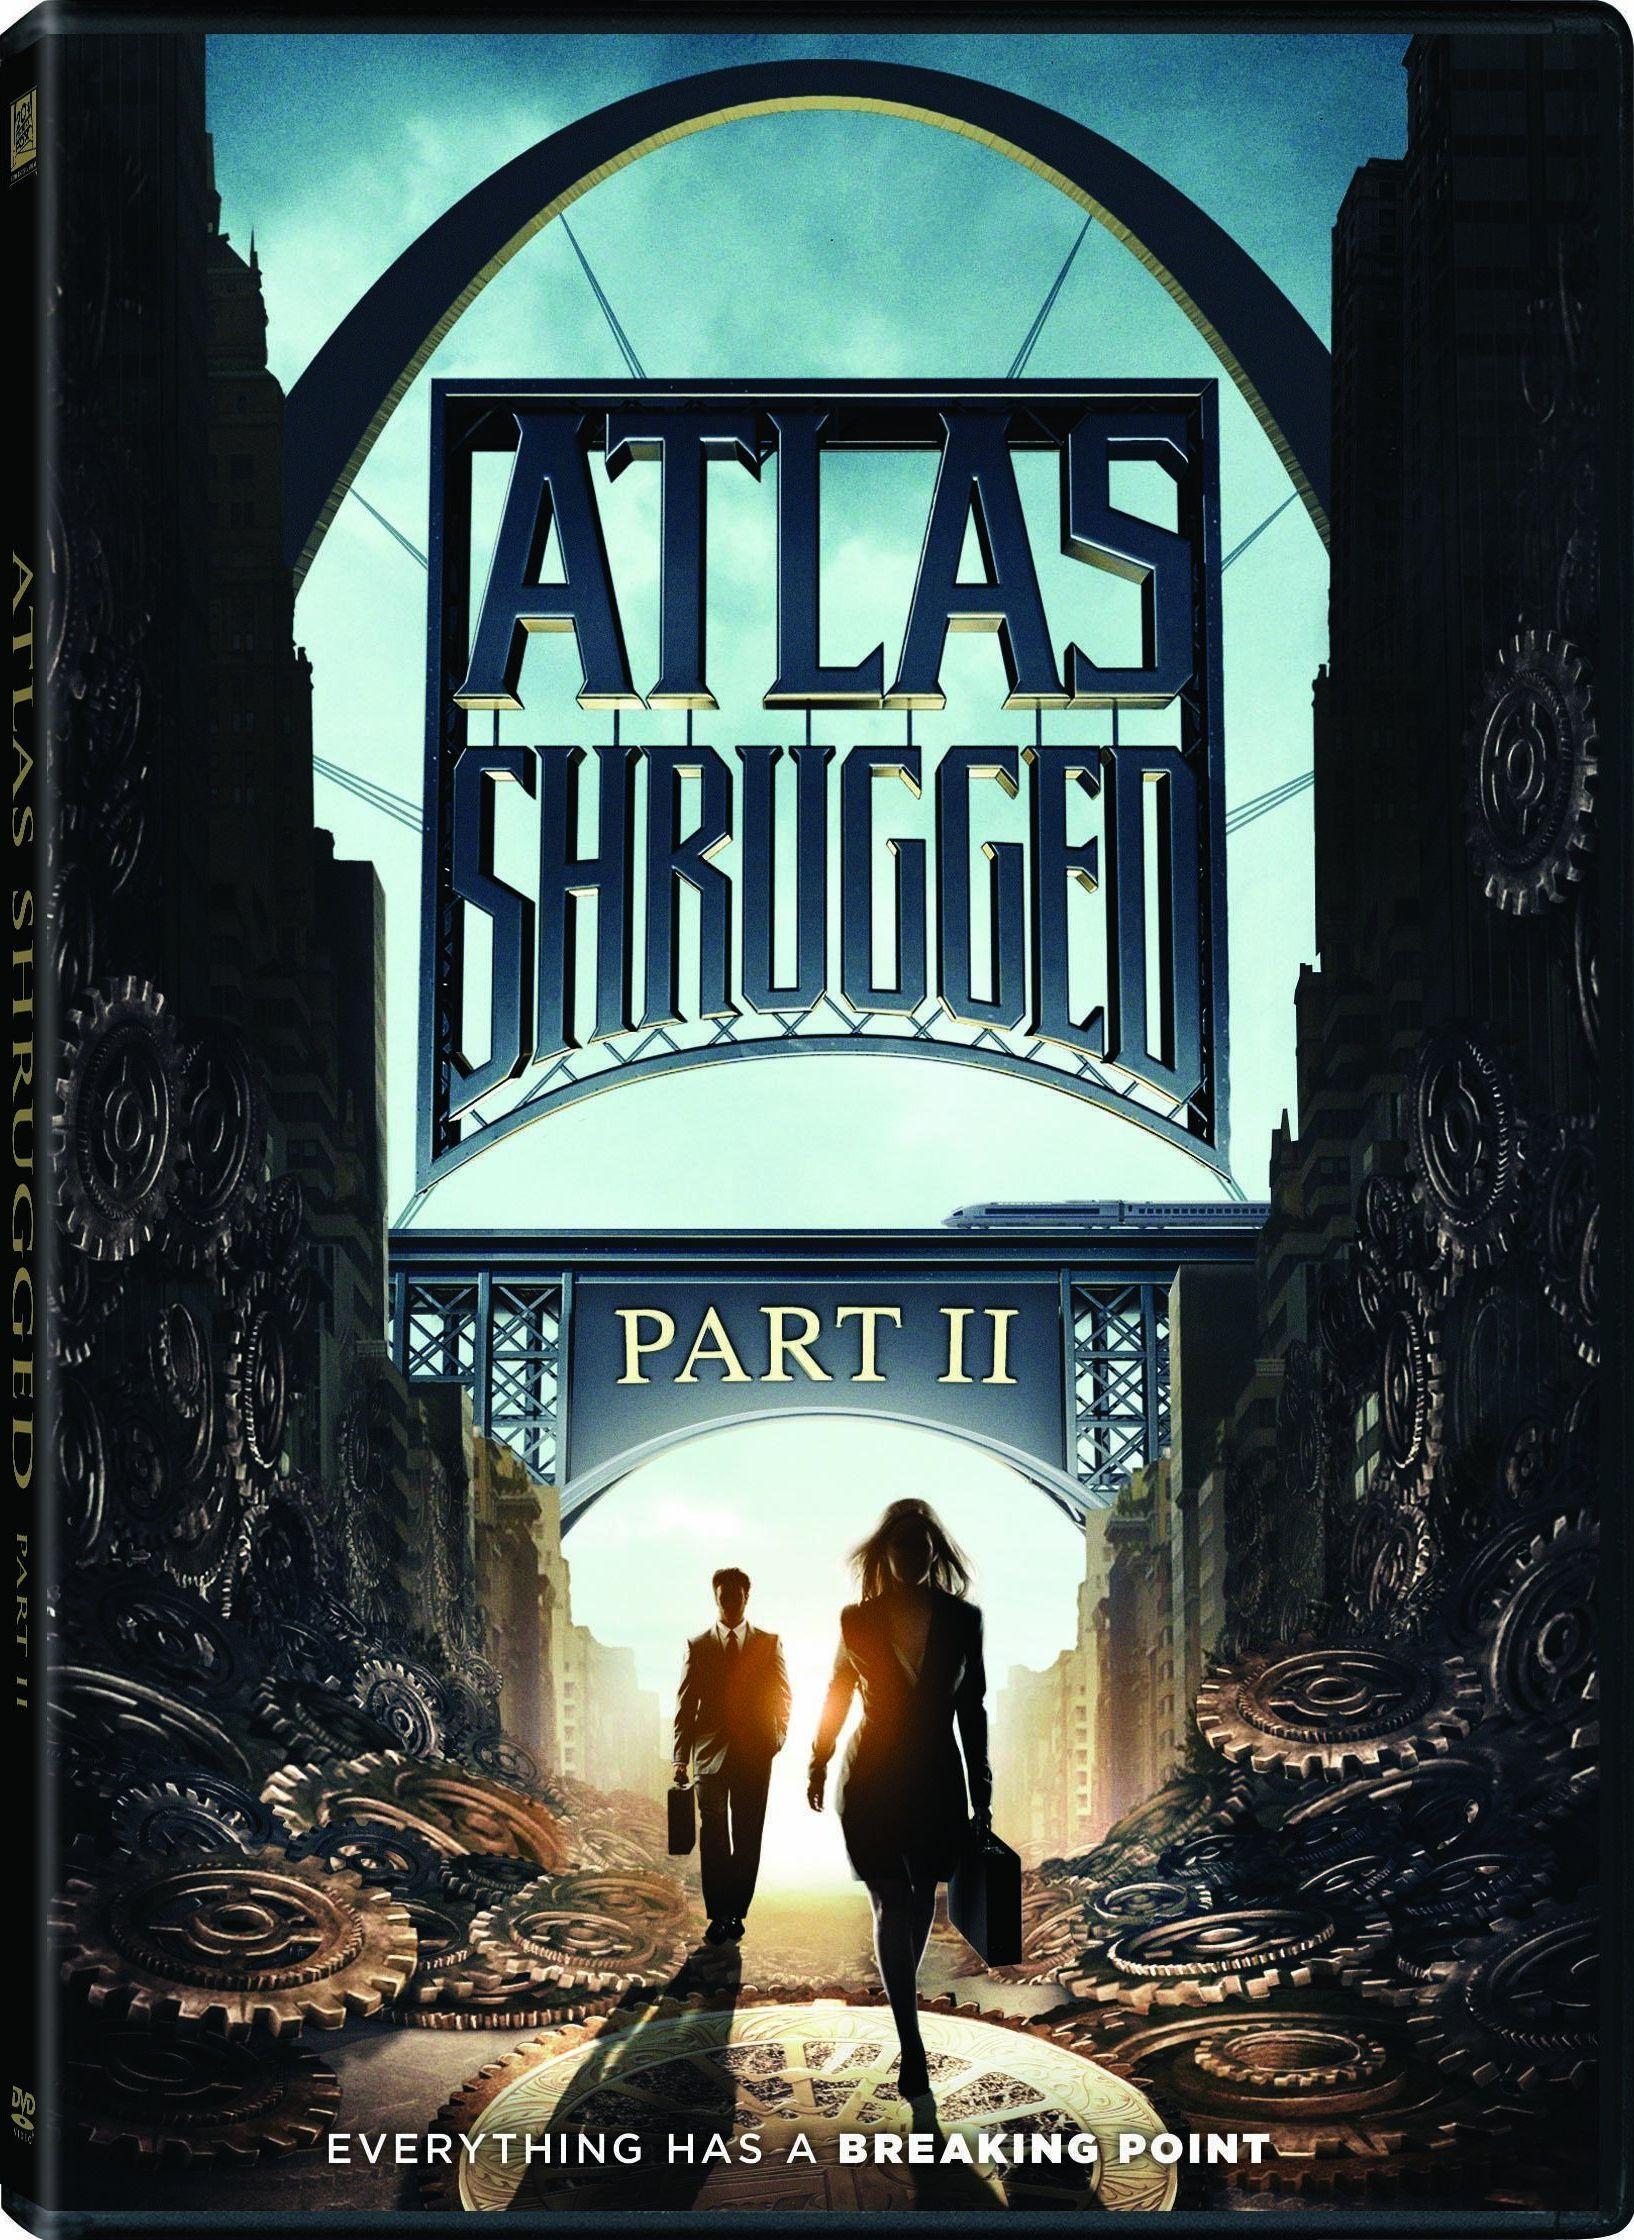 Atlas Shrugged: Part 2 Dvd Release Date February 19, 2013 With Regard To Atlas Shrugged Cover Art (View 13 of 20)